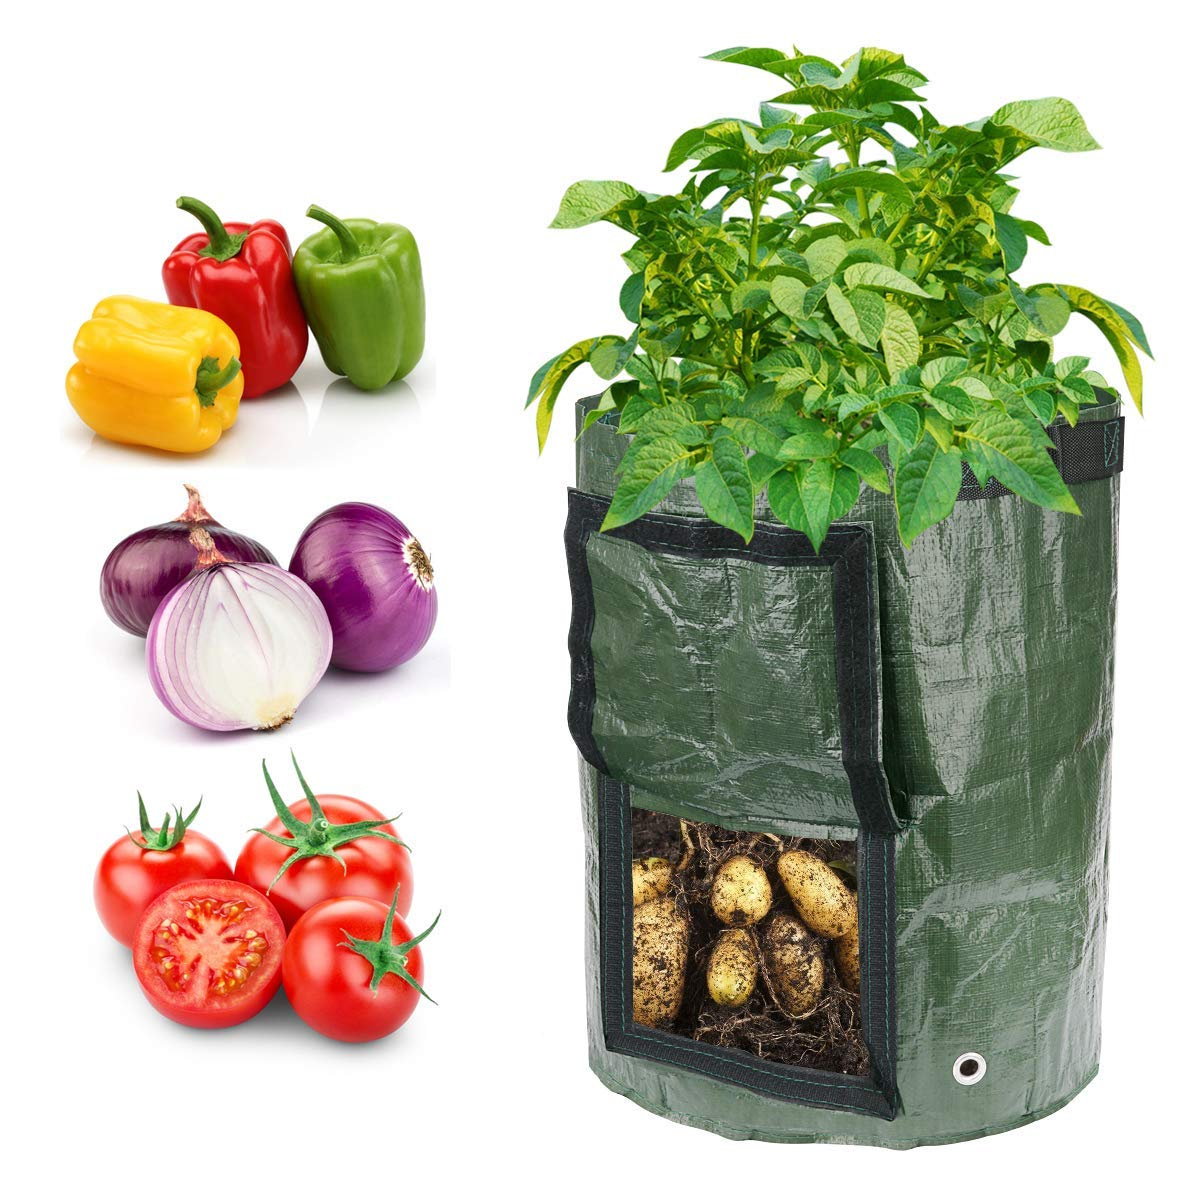 Potato Grow Bag 10 Gallon Fabric Plant Bags for Potato, Tomato, Onion, Carrot,Vegetable, Mushroom,Sweet Potato,Flowers Indoor Outdoor Pack-2